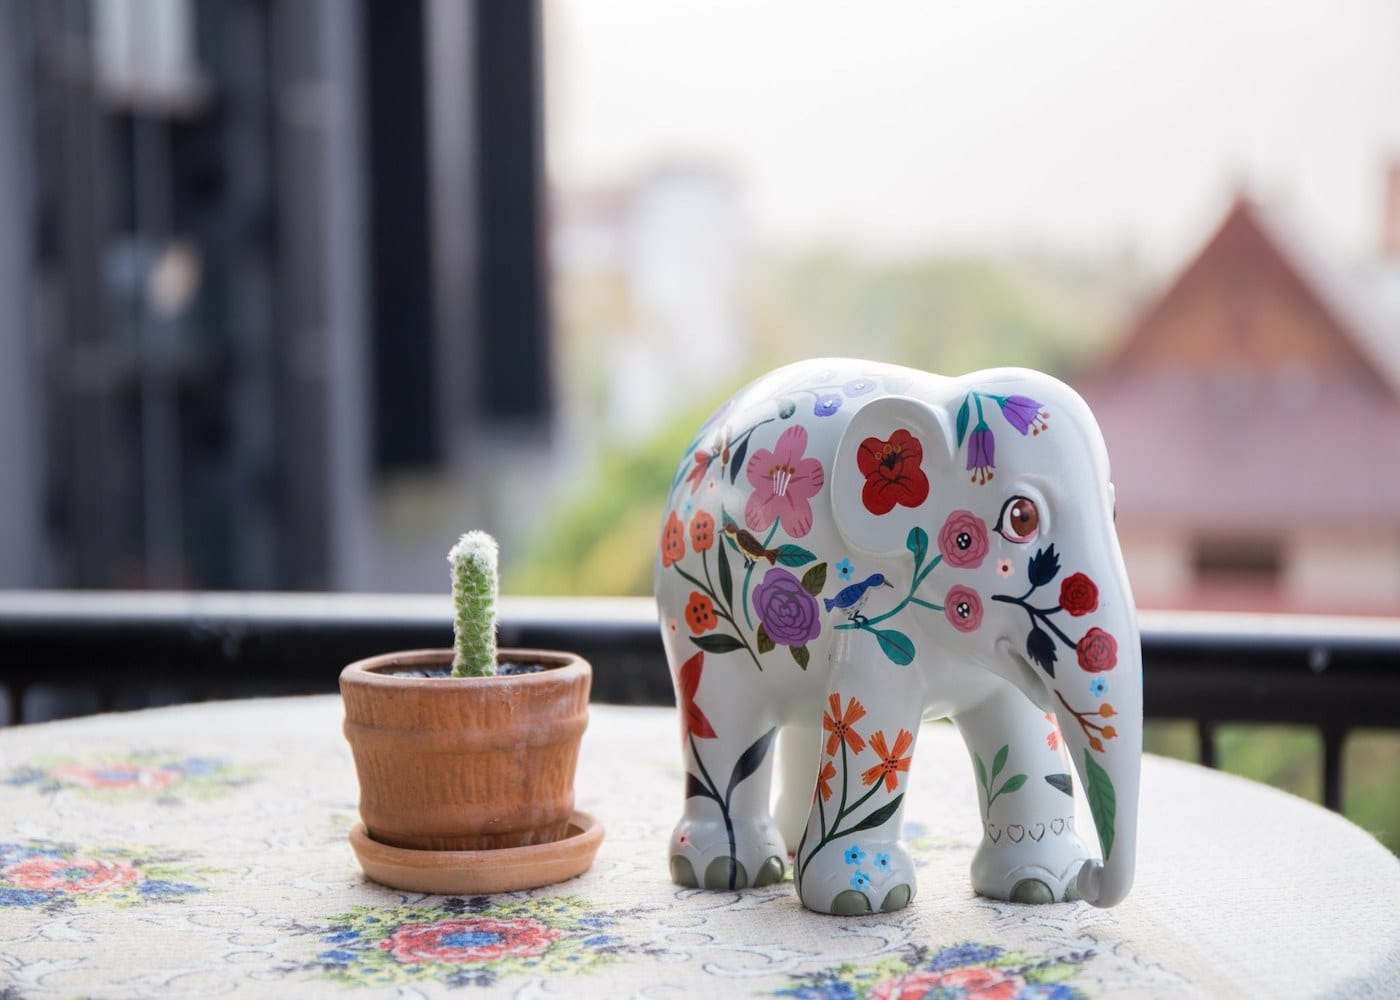 Elephant Parade | Things to do and see in Haji Lane with kids